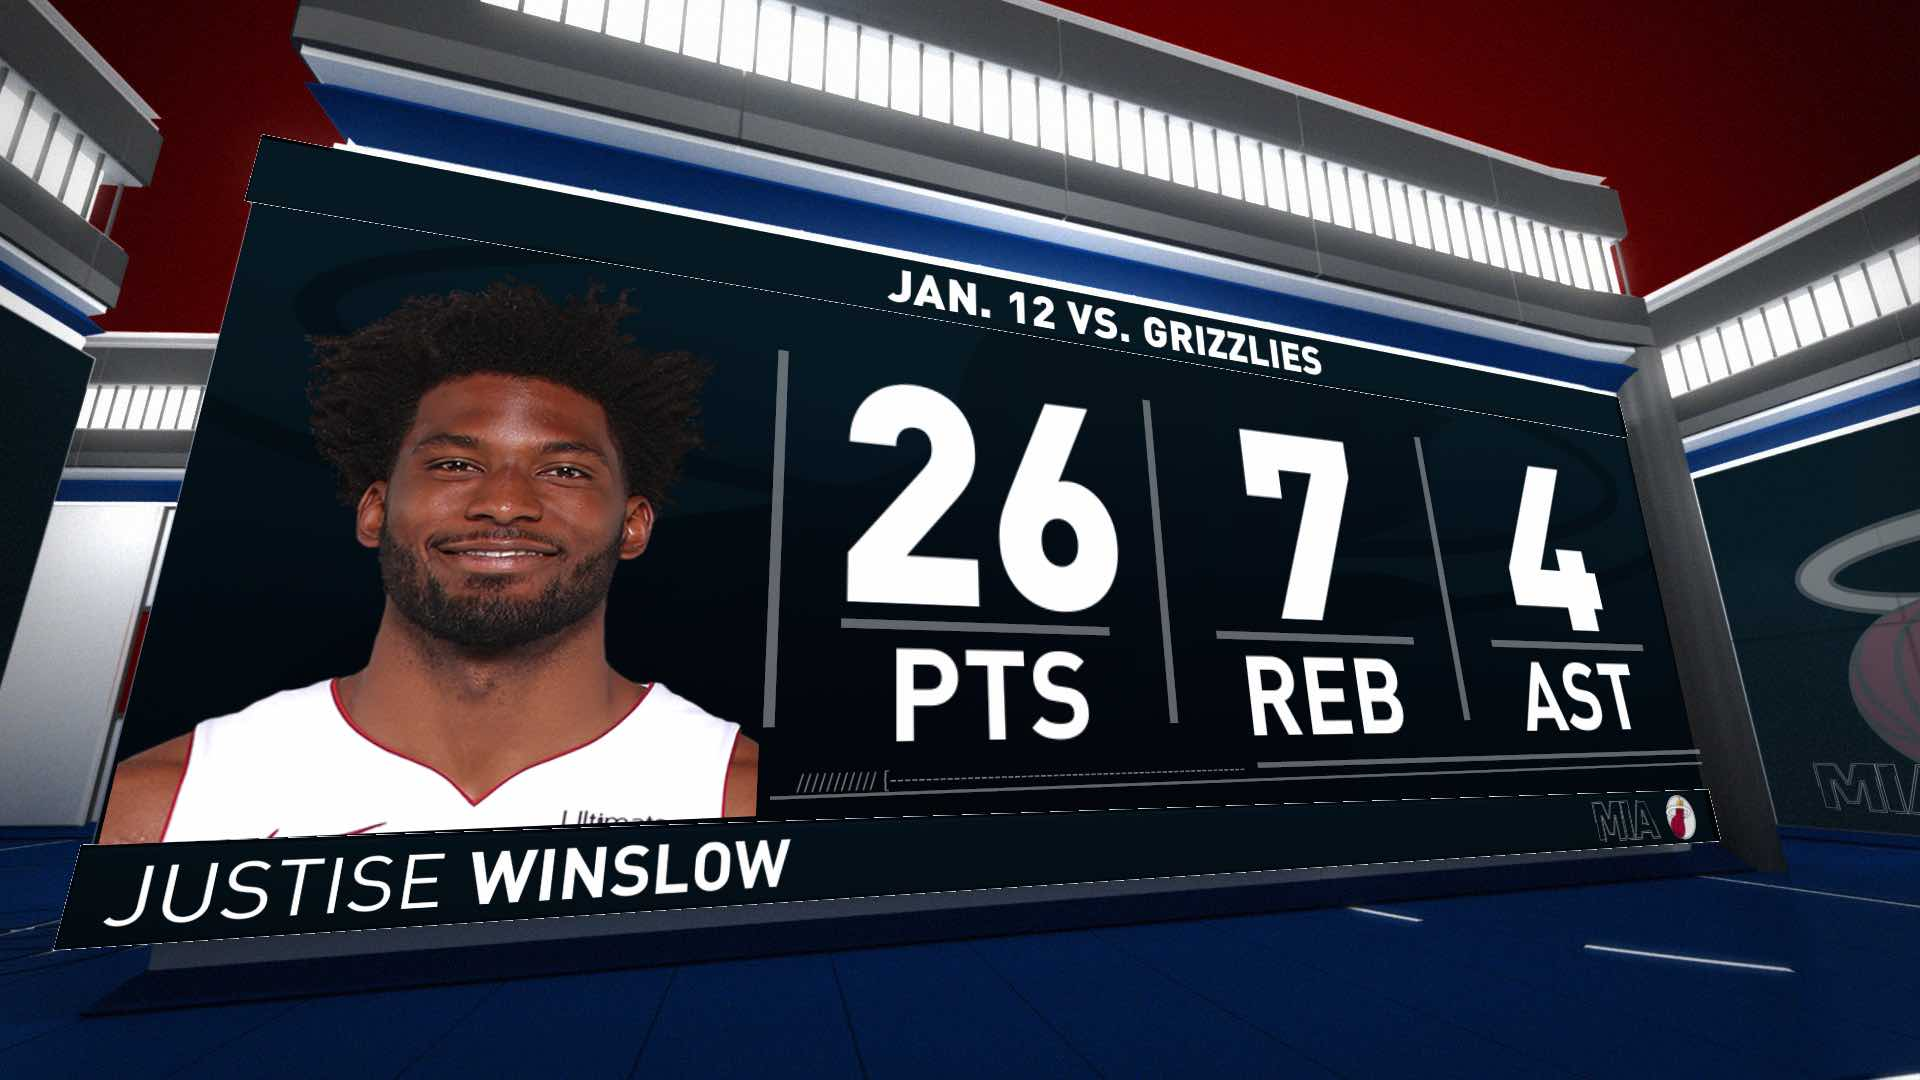 Highlights: Justise Winslow | Grizzlies vs. Heat